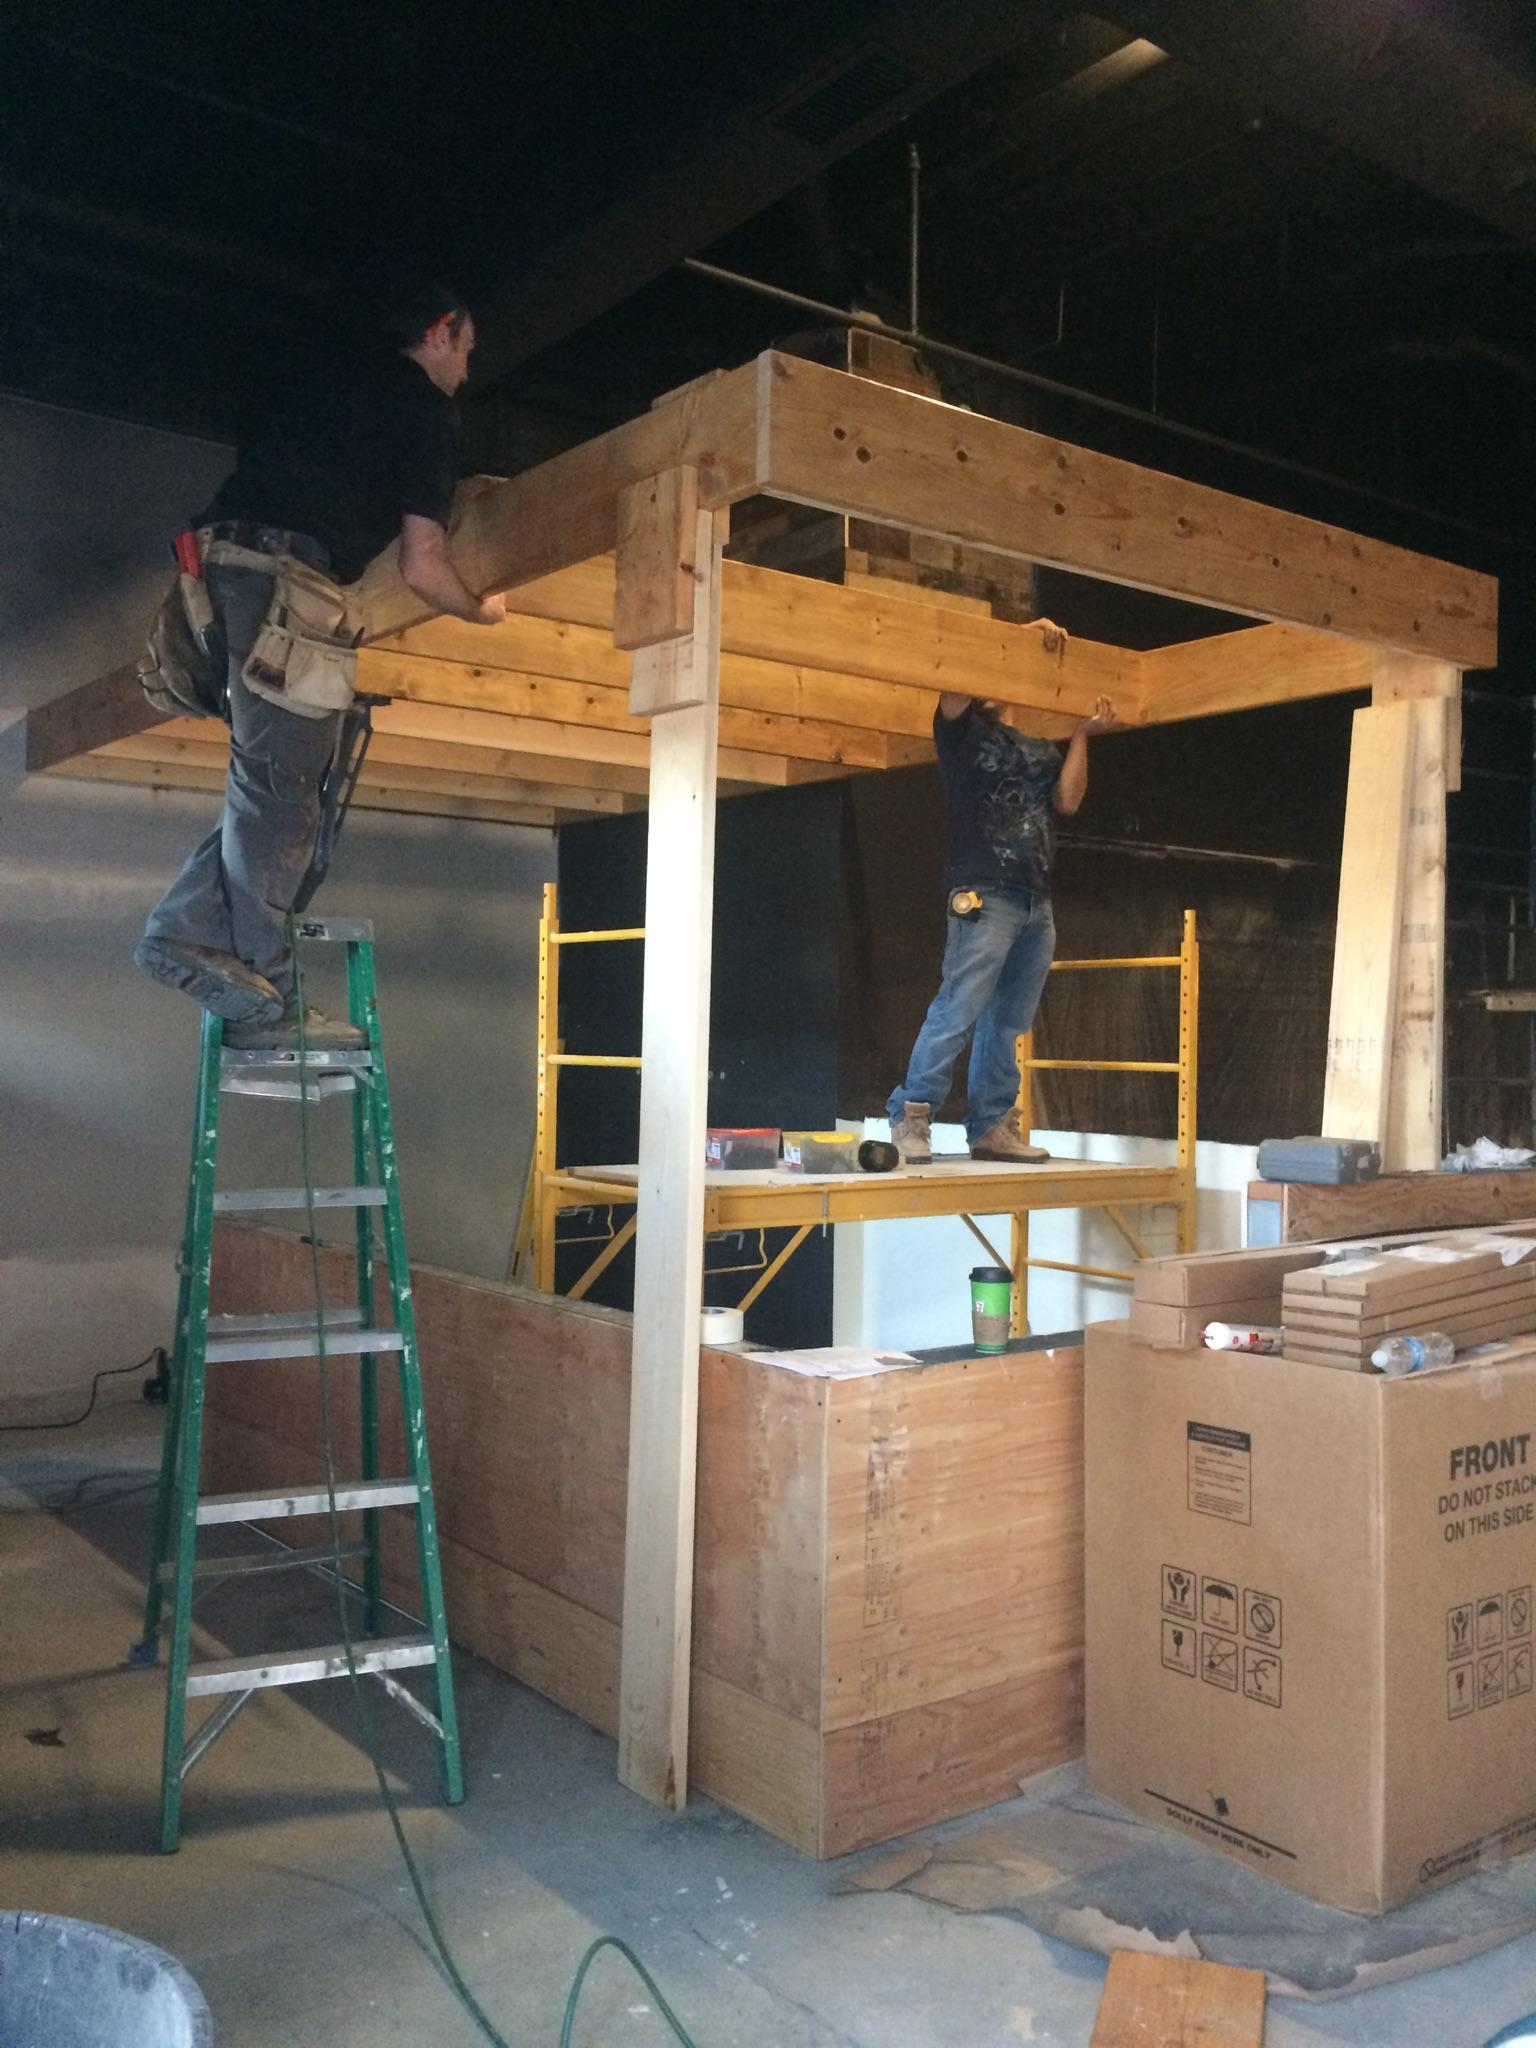 Building the trellis, before hanging it from the ceiling!